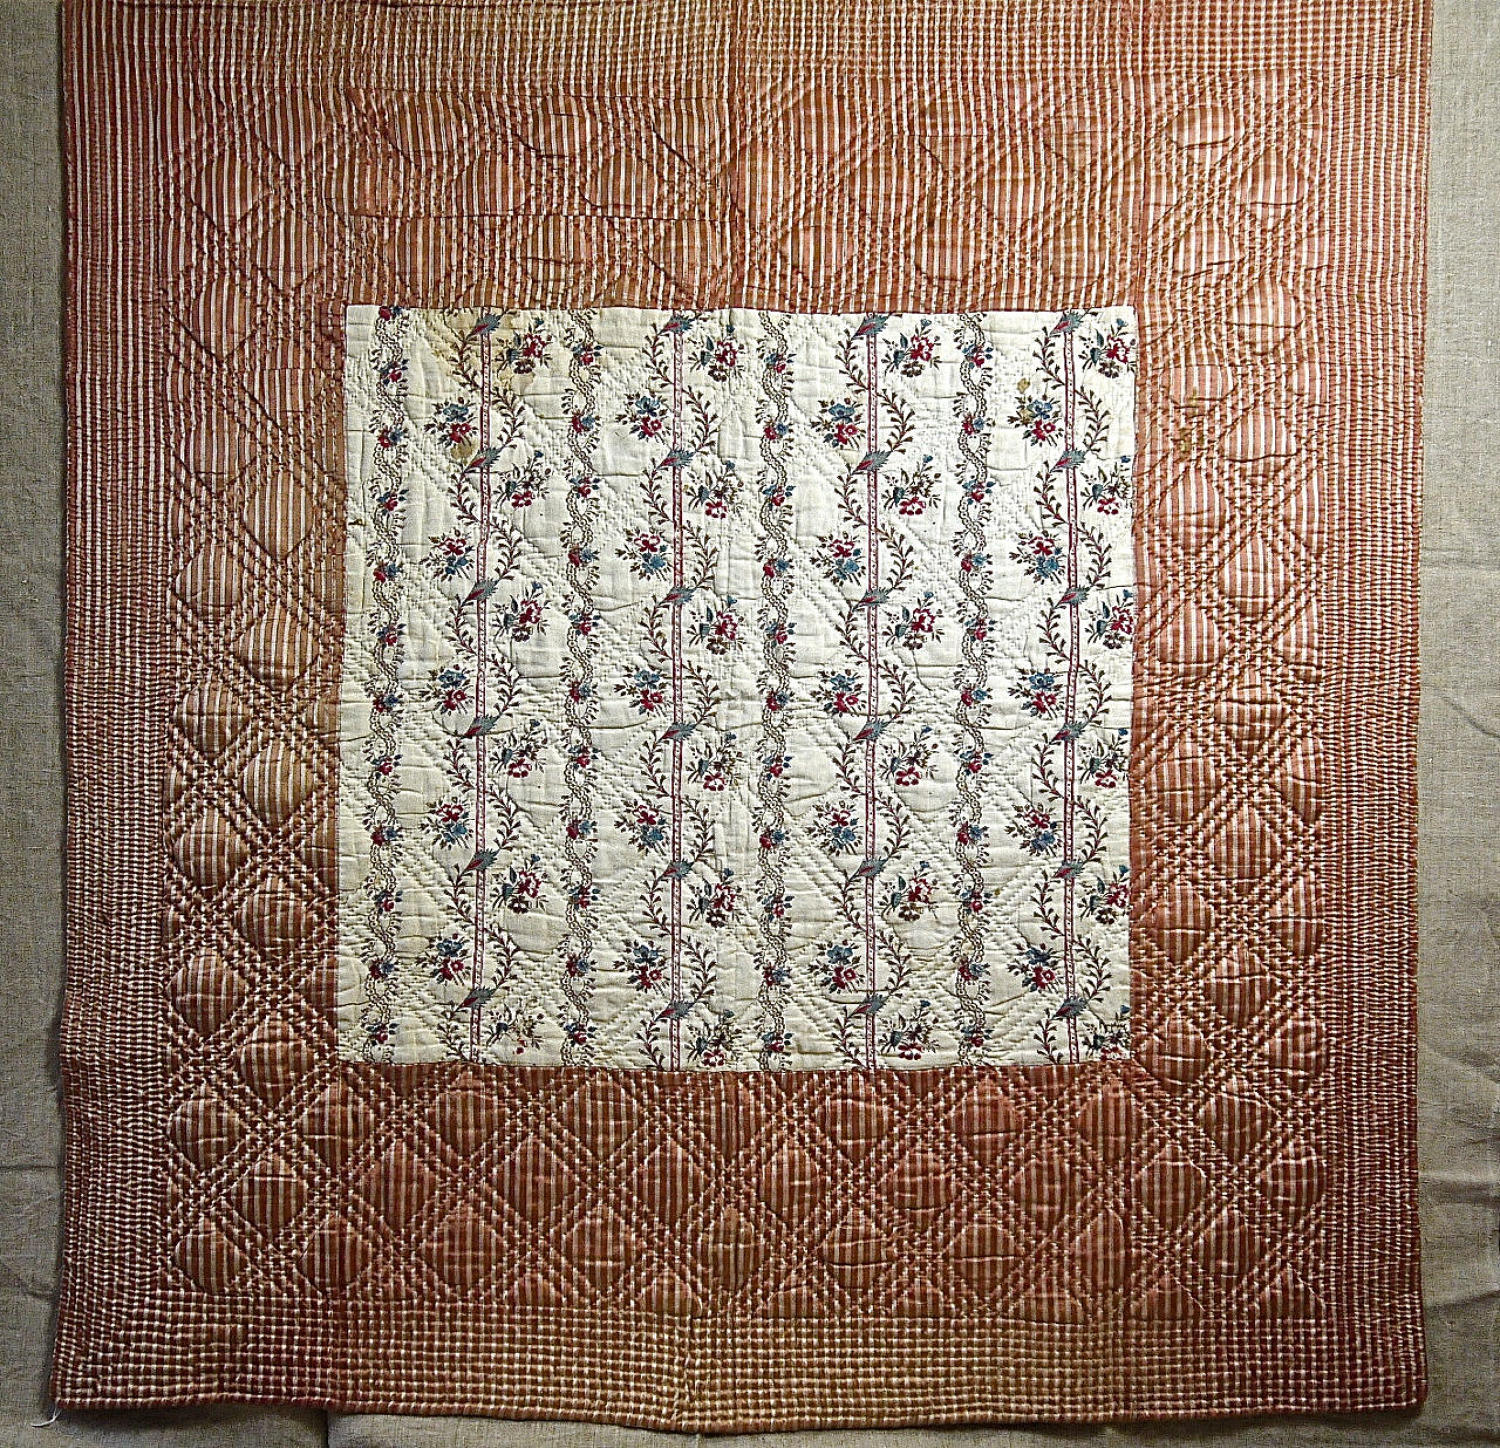 Blockprinted Flowers Cotton and Striped Silk Quilt French c.1780